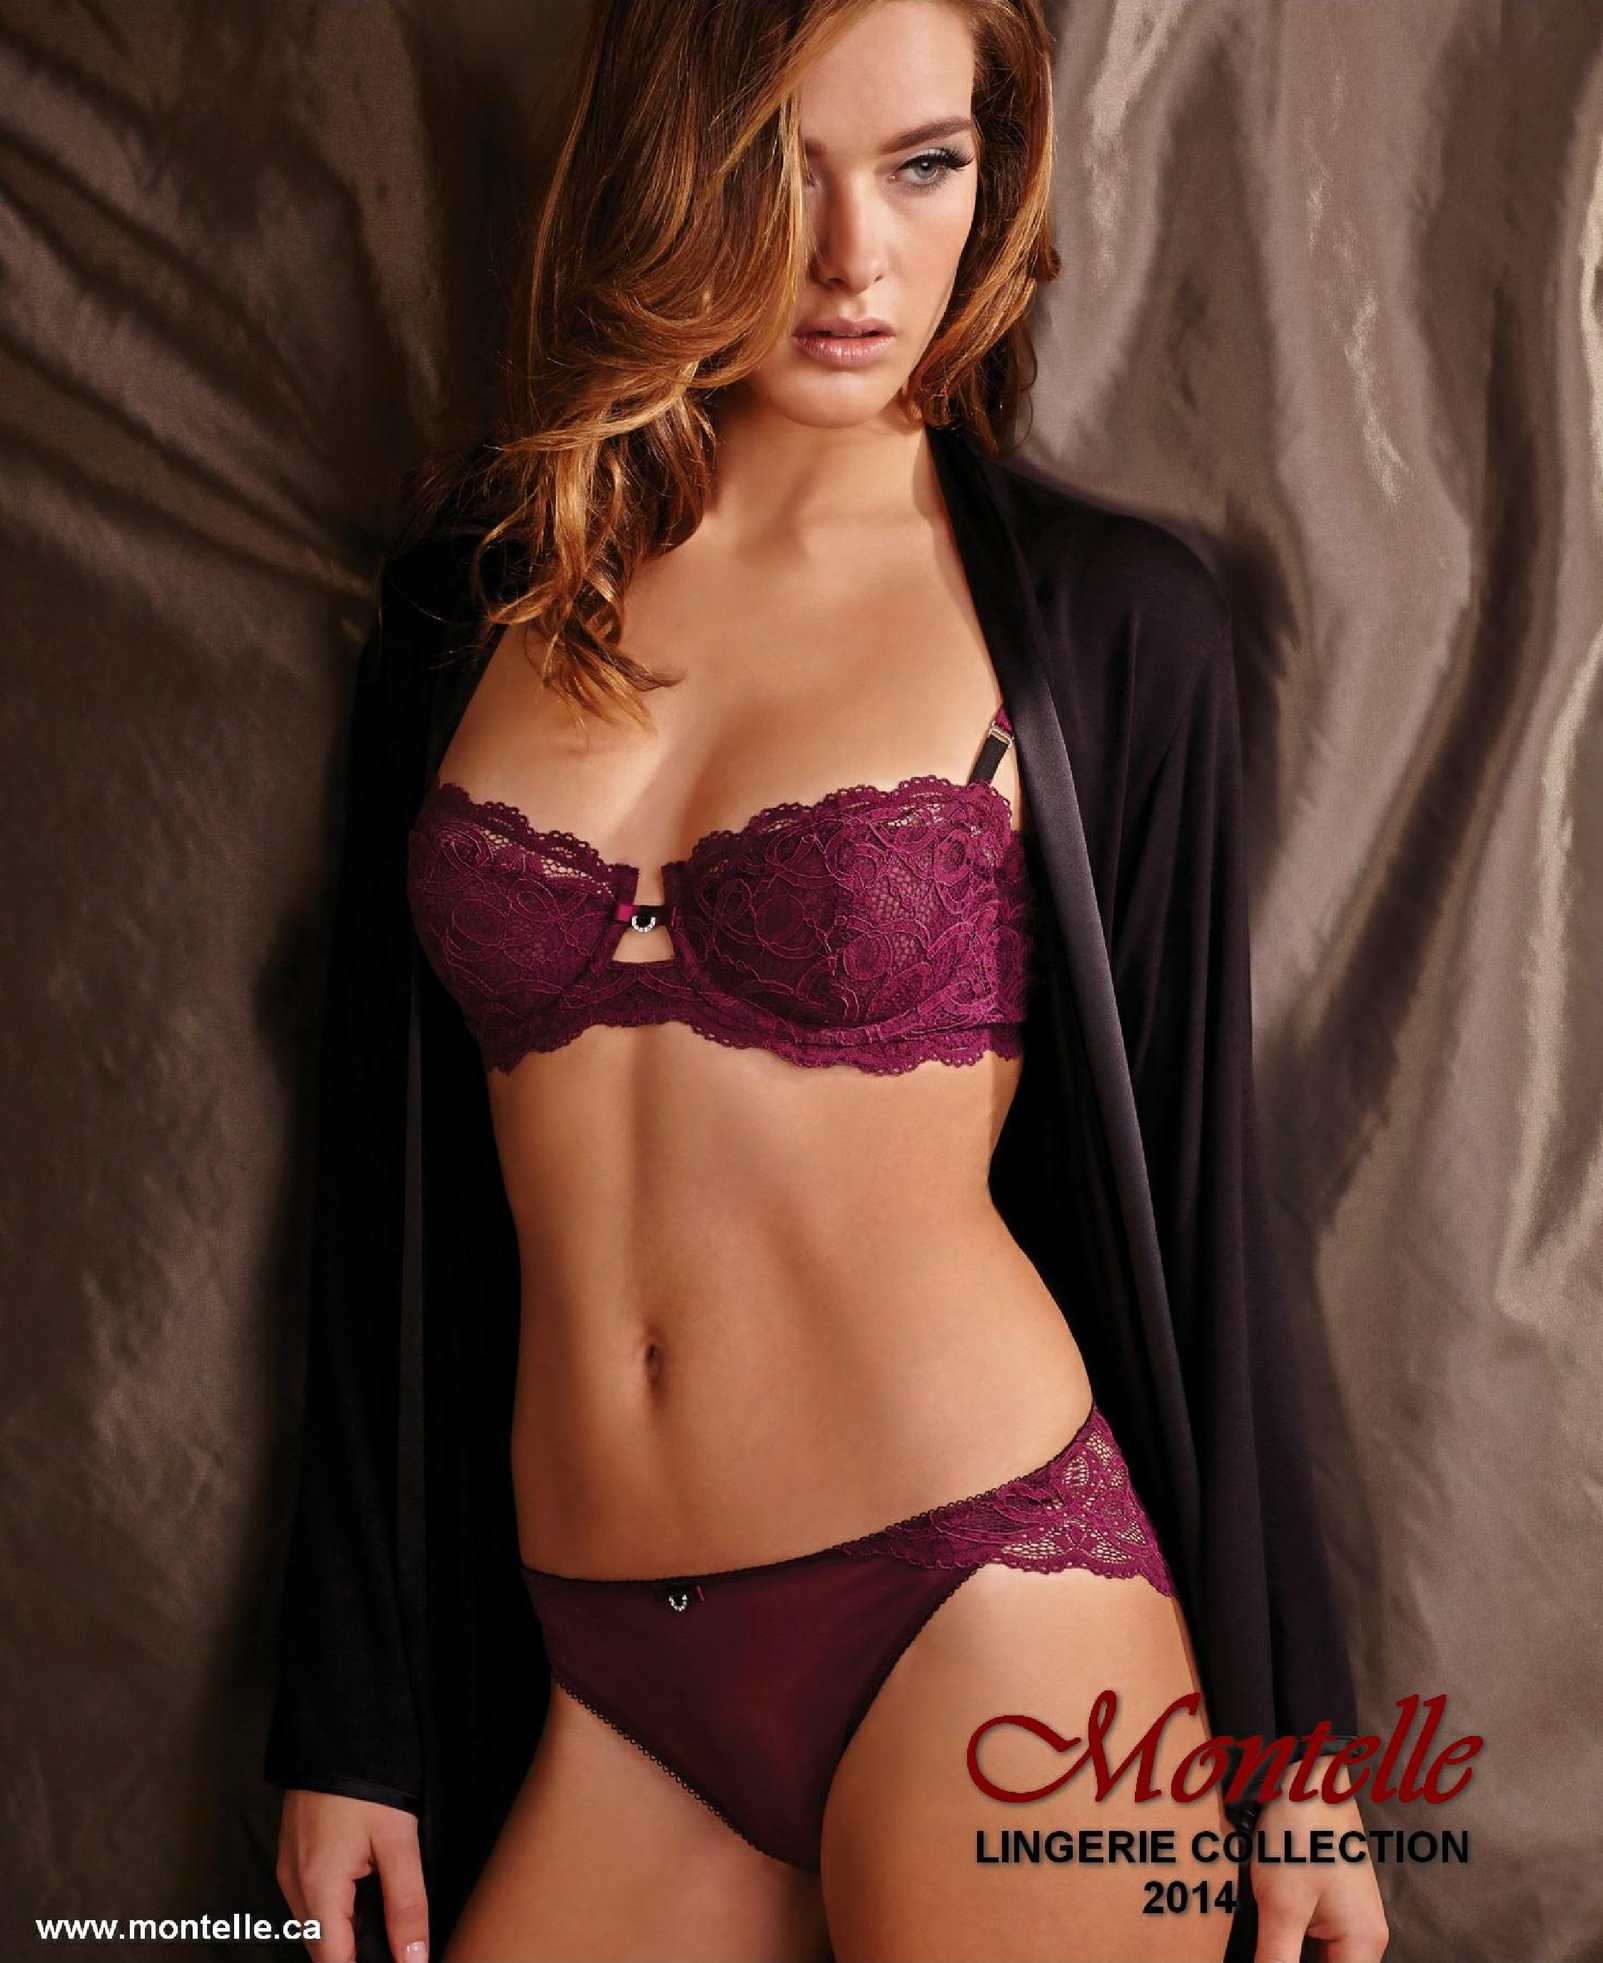 Montelle lingerie collection 2014